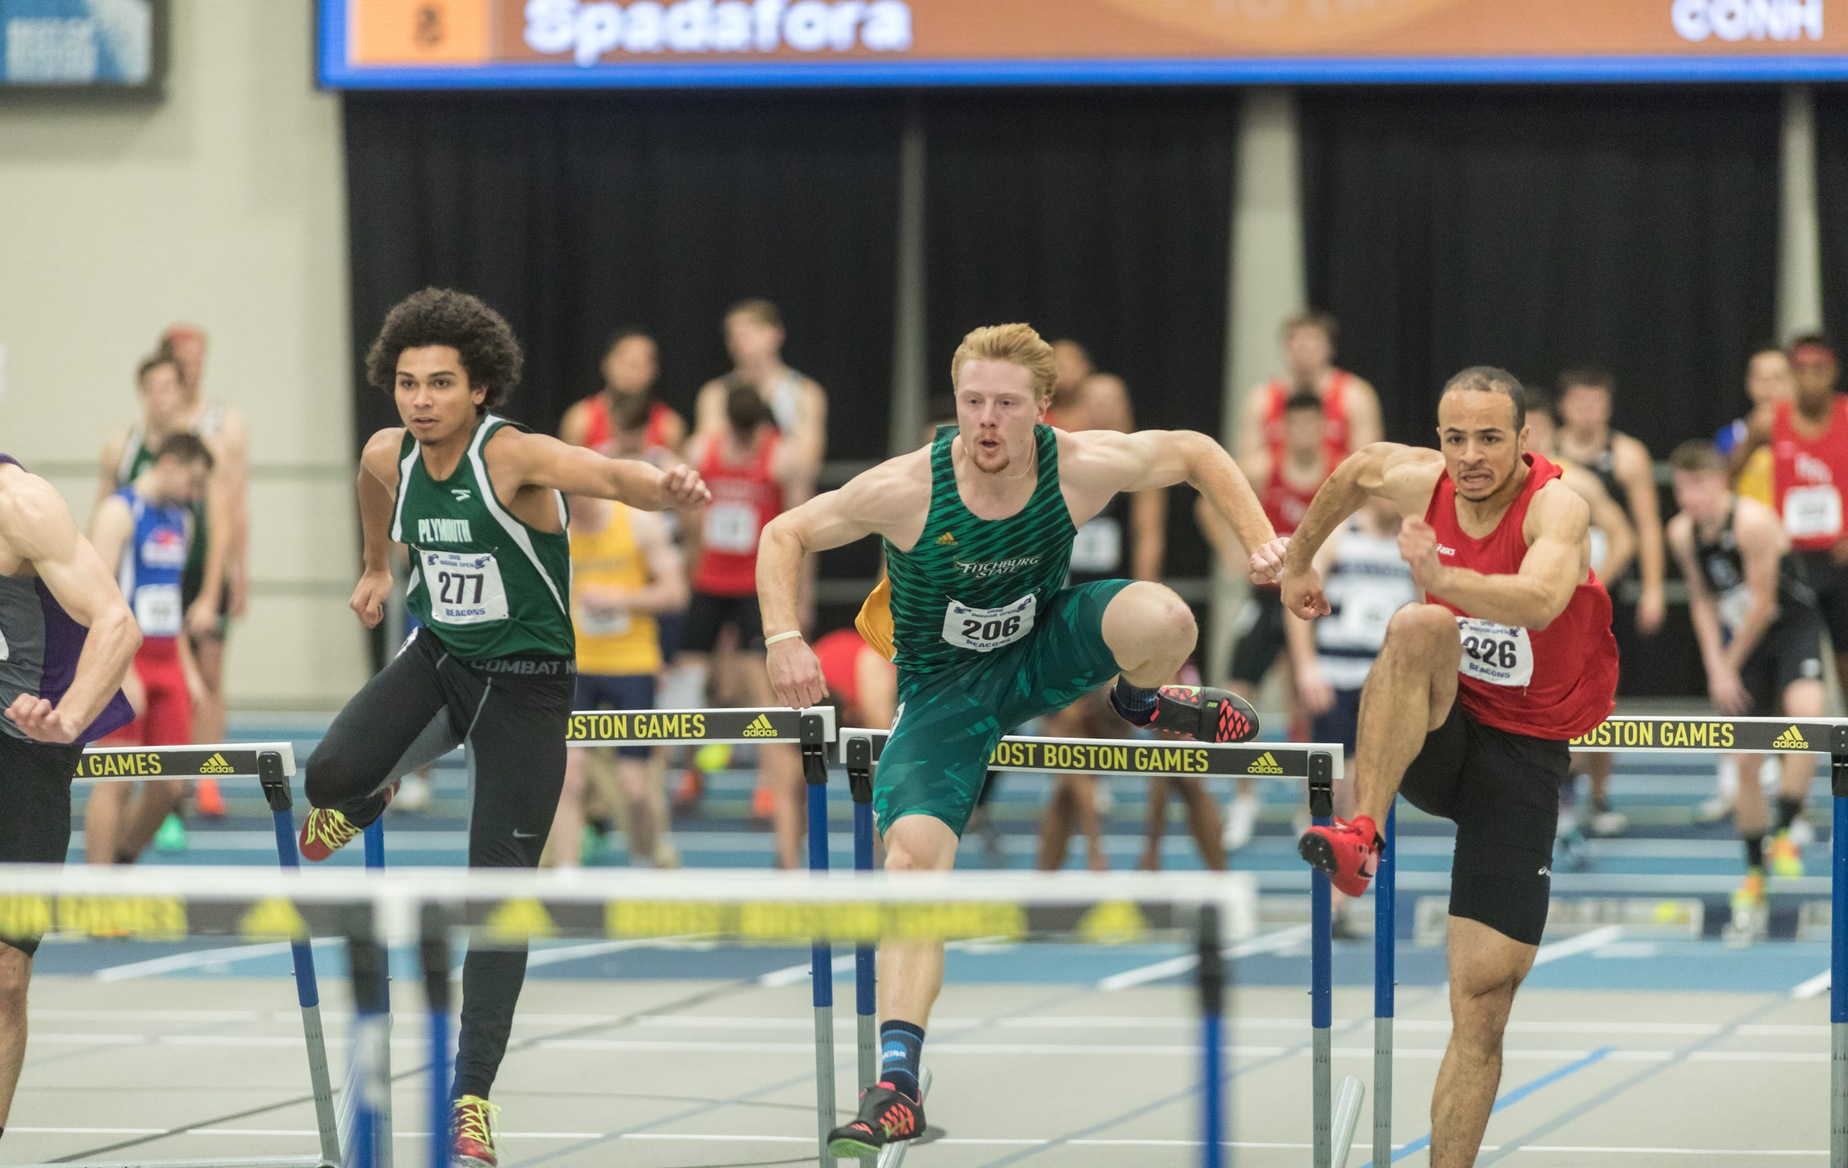 Fitchburg State Shines At Dartmouth Relays